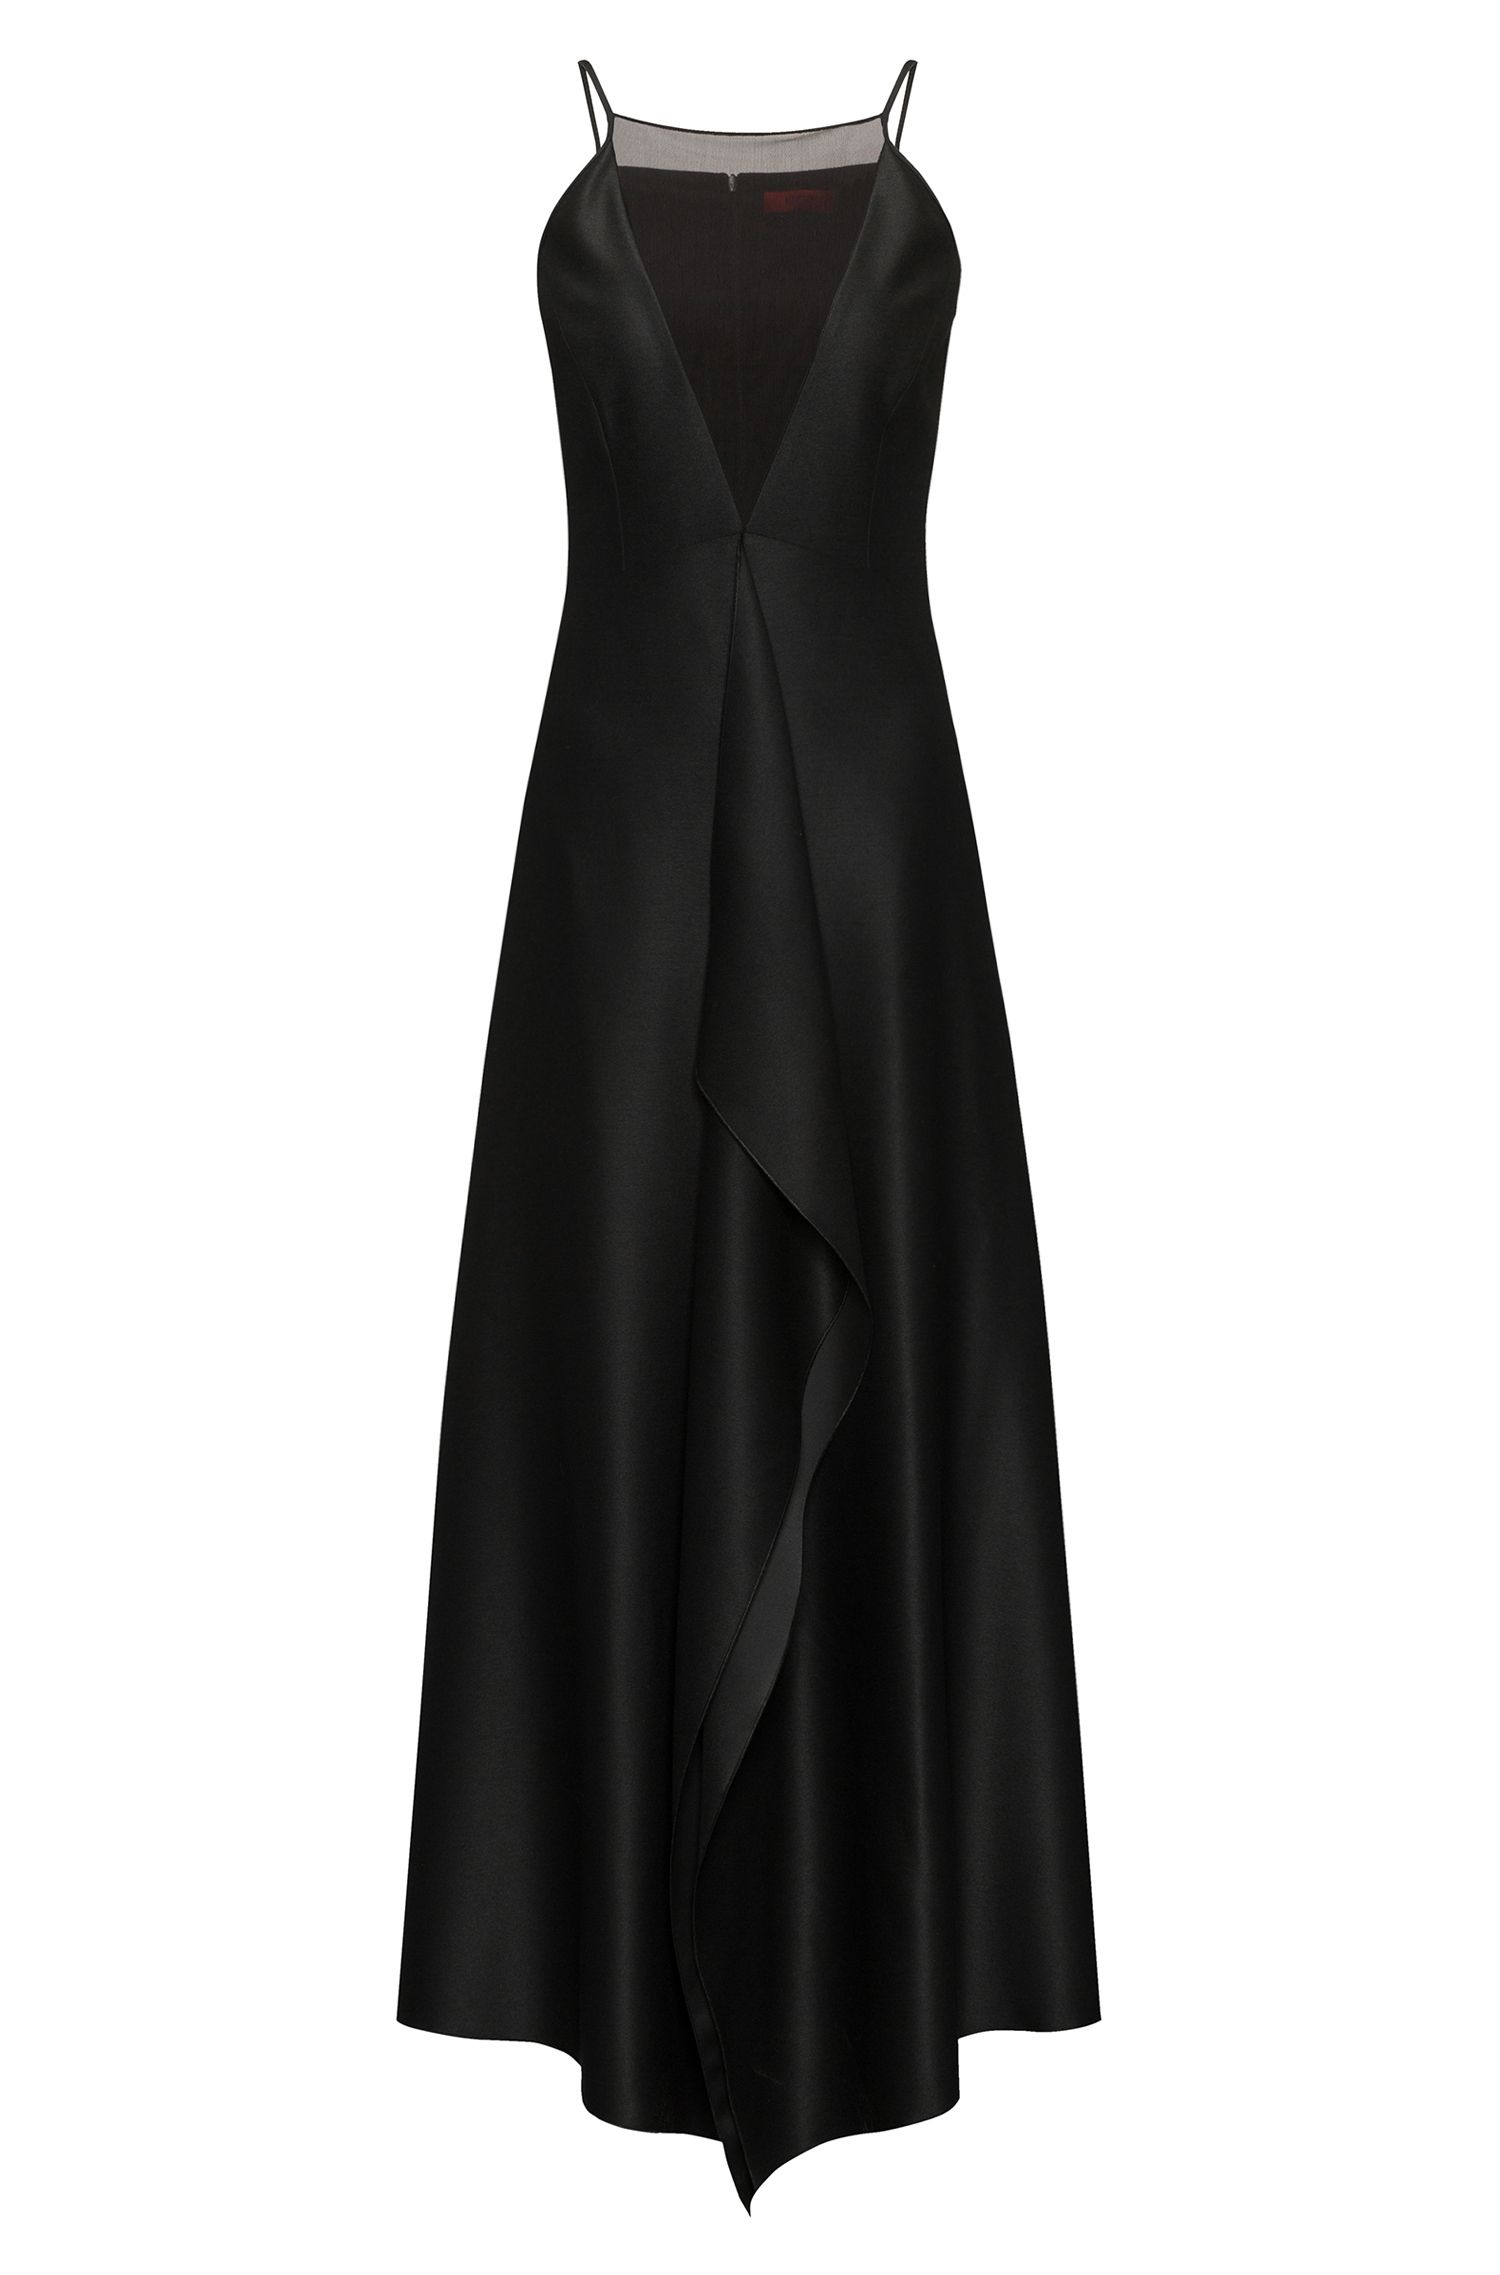 Cascade-front evening dress with mesh V neckline